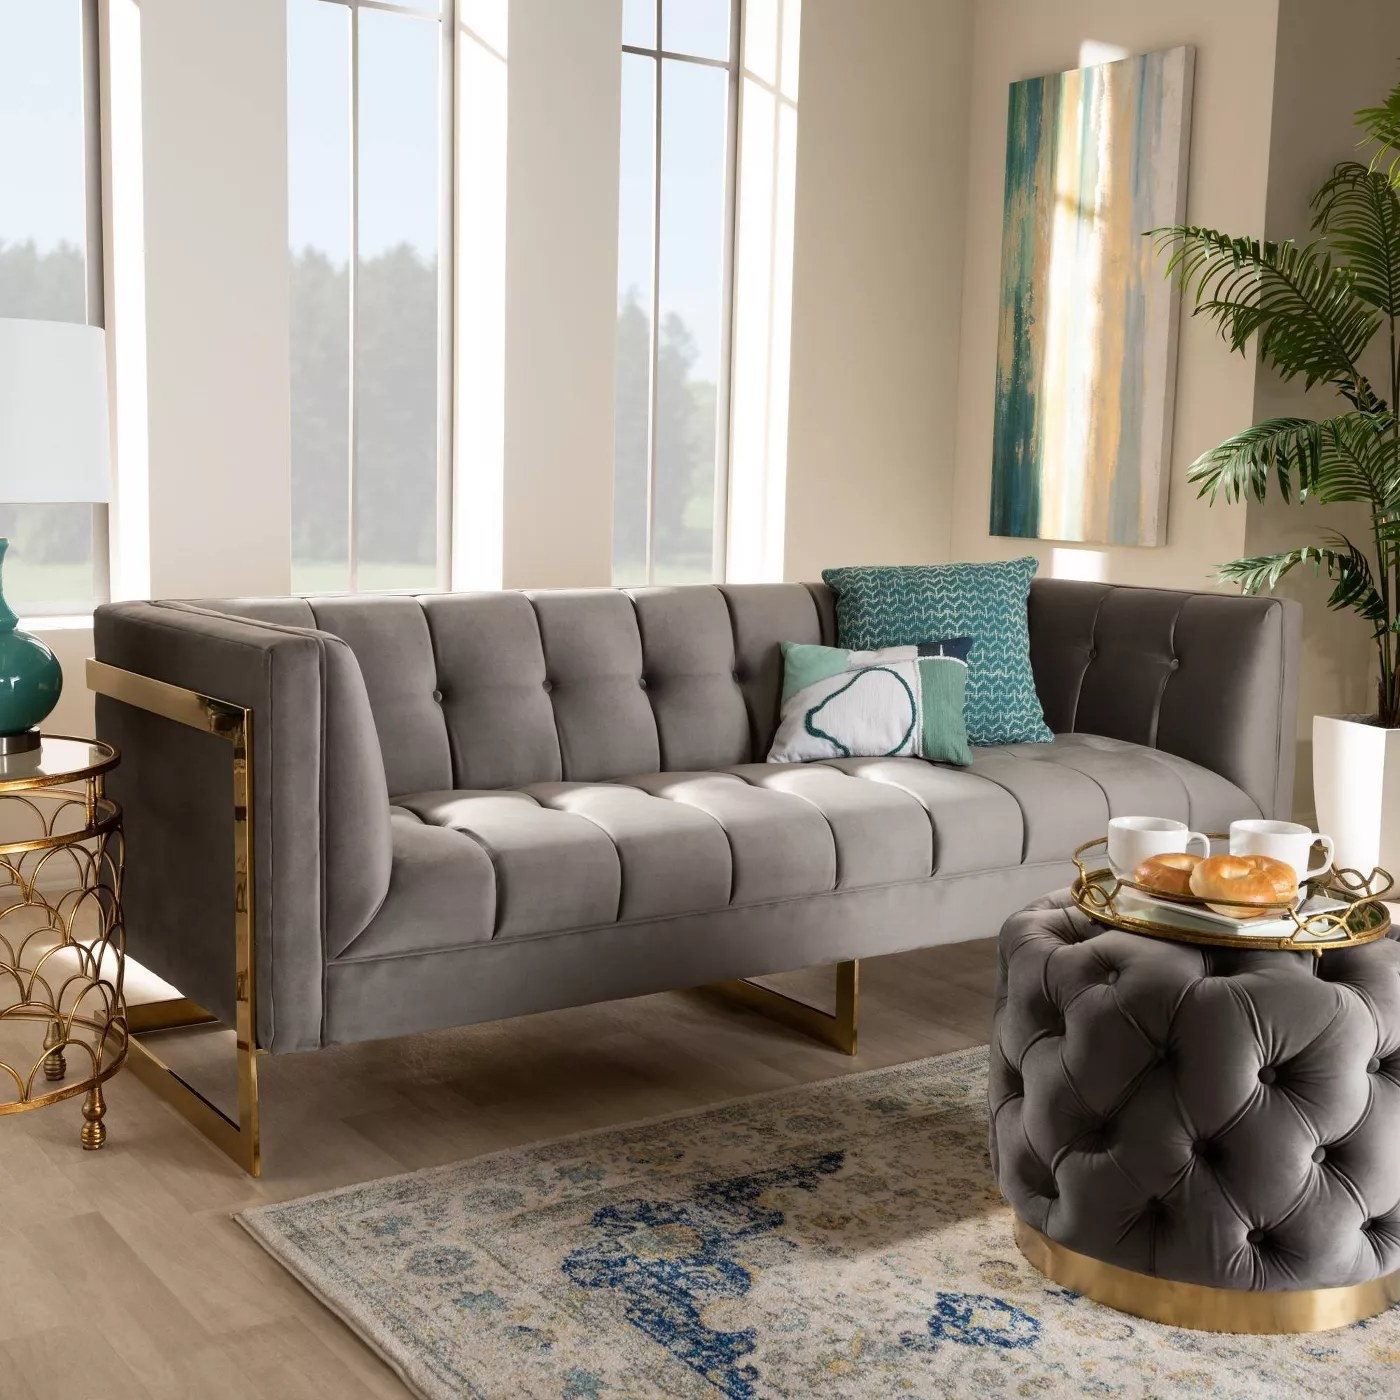 The gray couch with a gold-tone frame